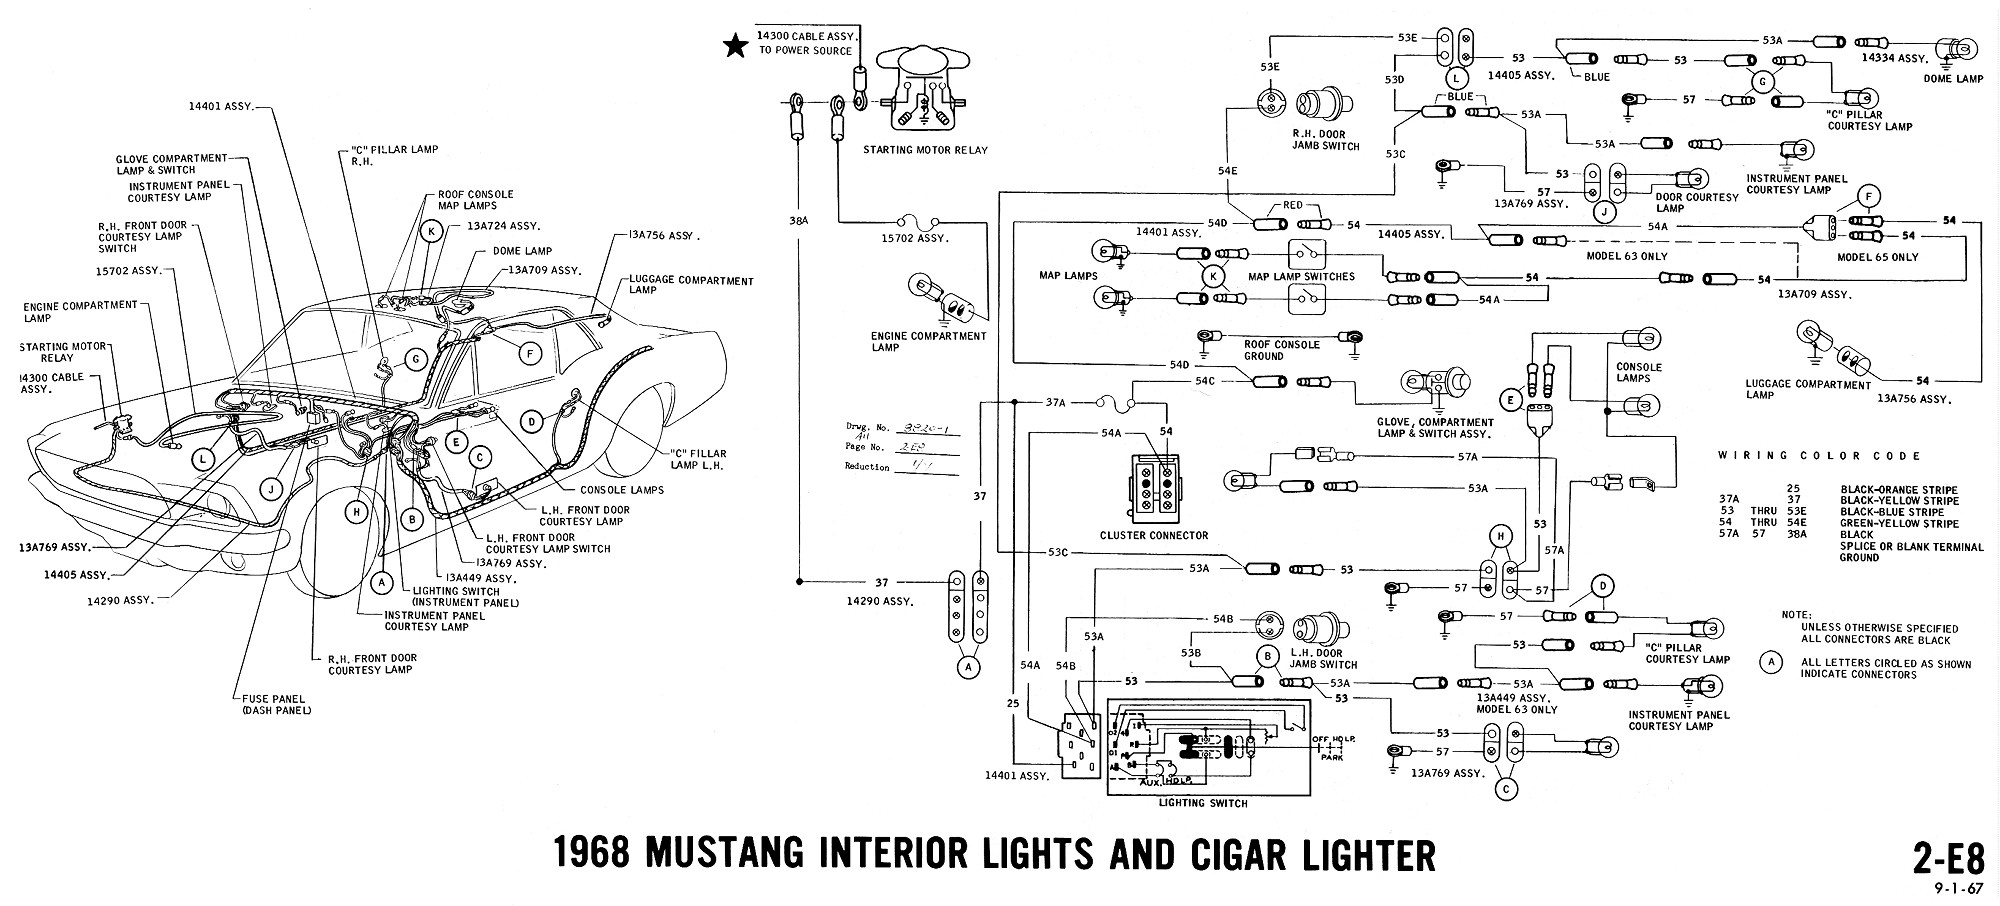 1968 mustang wiring diagram interior lights cigar lighter 1968 mustang wiring diagrams and vacuum schematics average joe mustang wiring harness diagram at bayanpartner.co